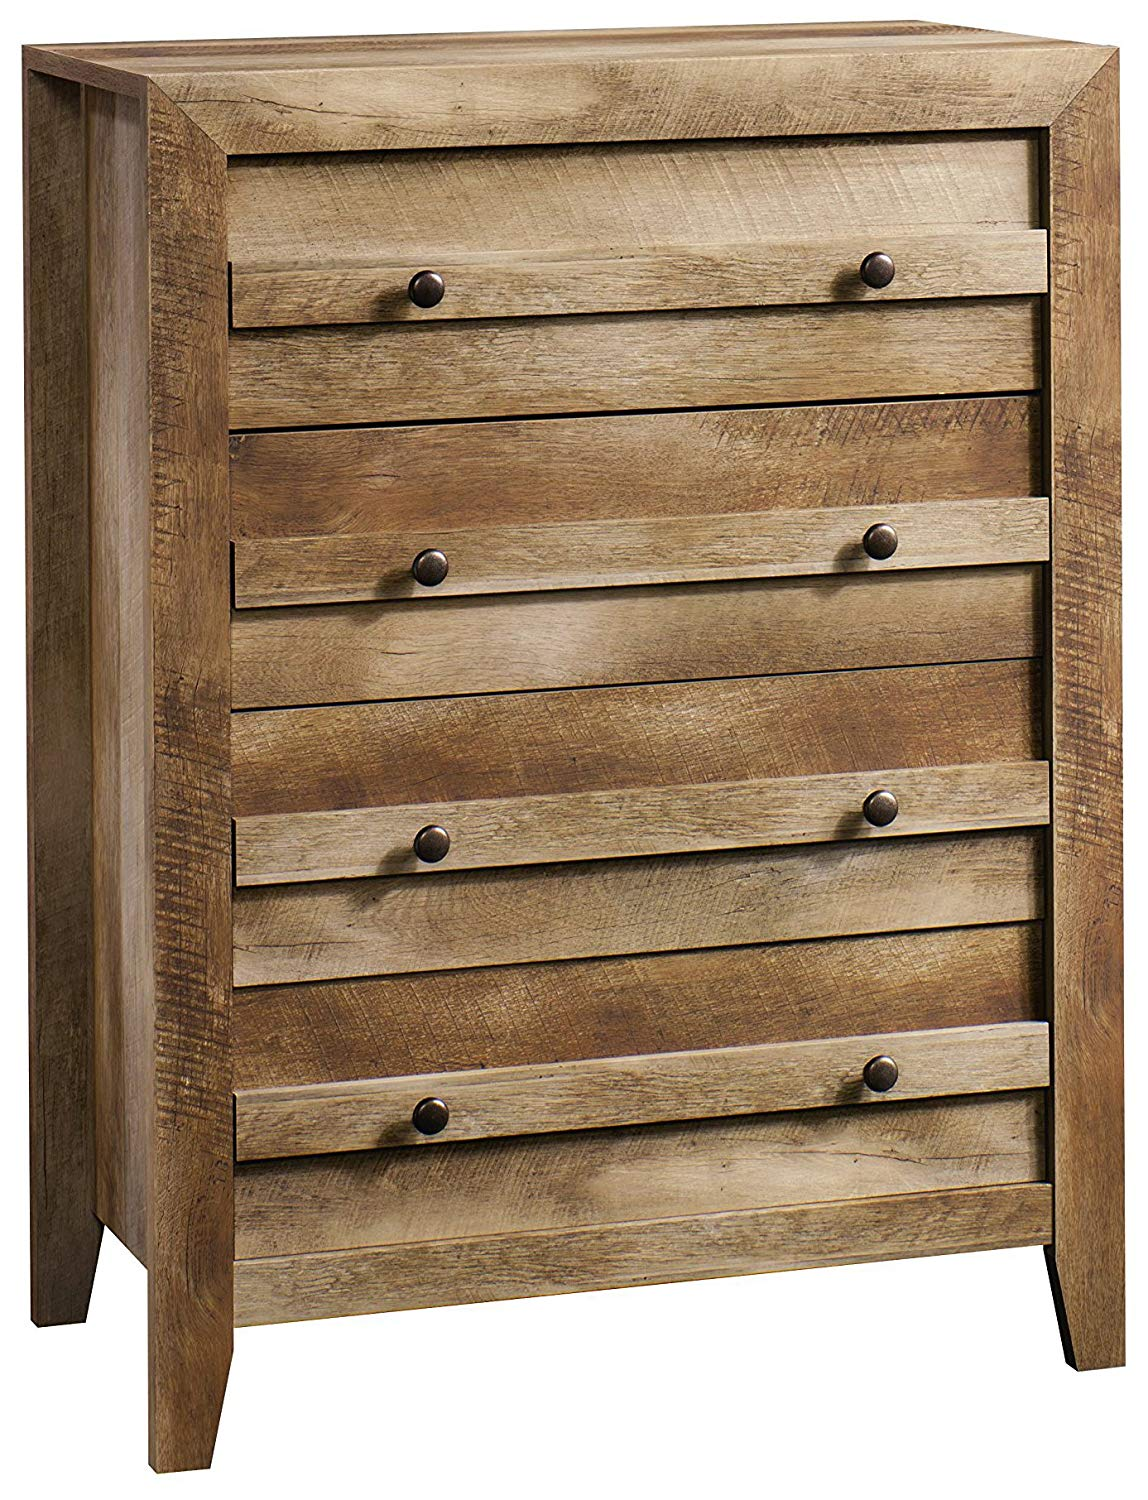 Sauder 418175 Bedroom Chest Of Drawers Review